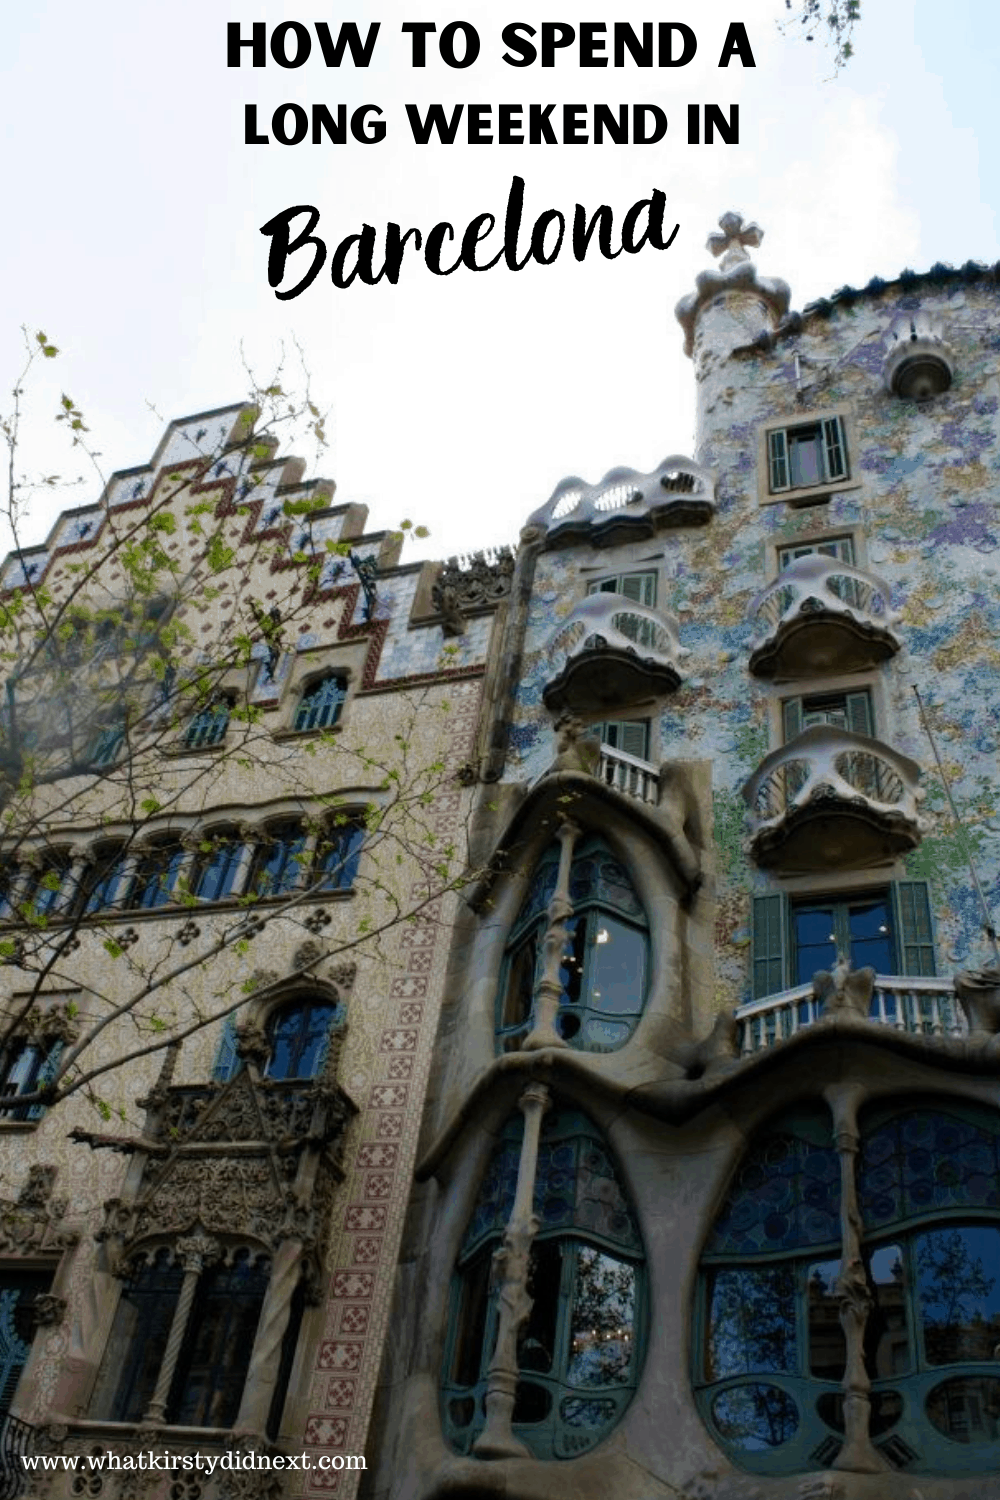 How to spend a long weekend in Barcelona